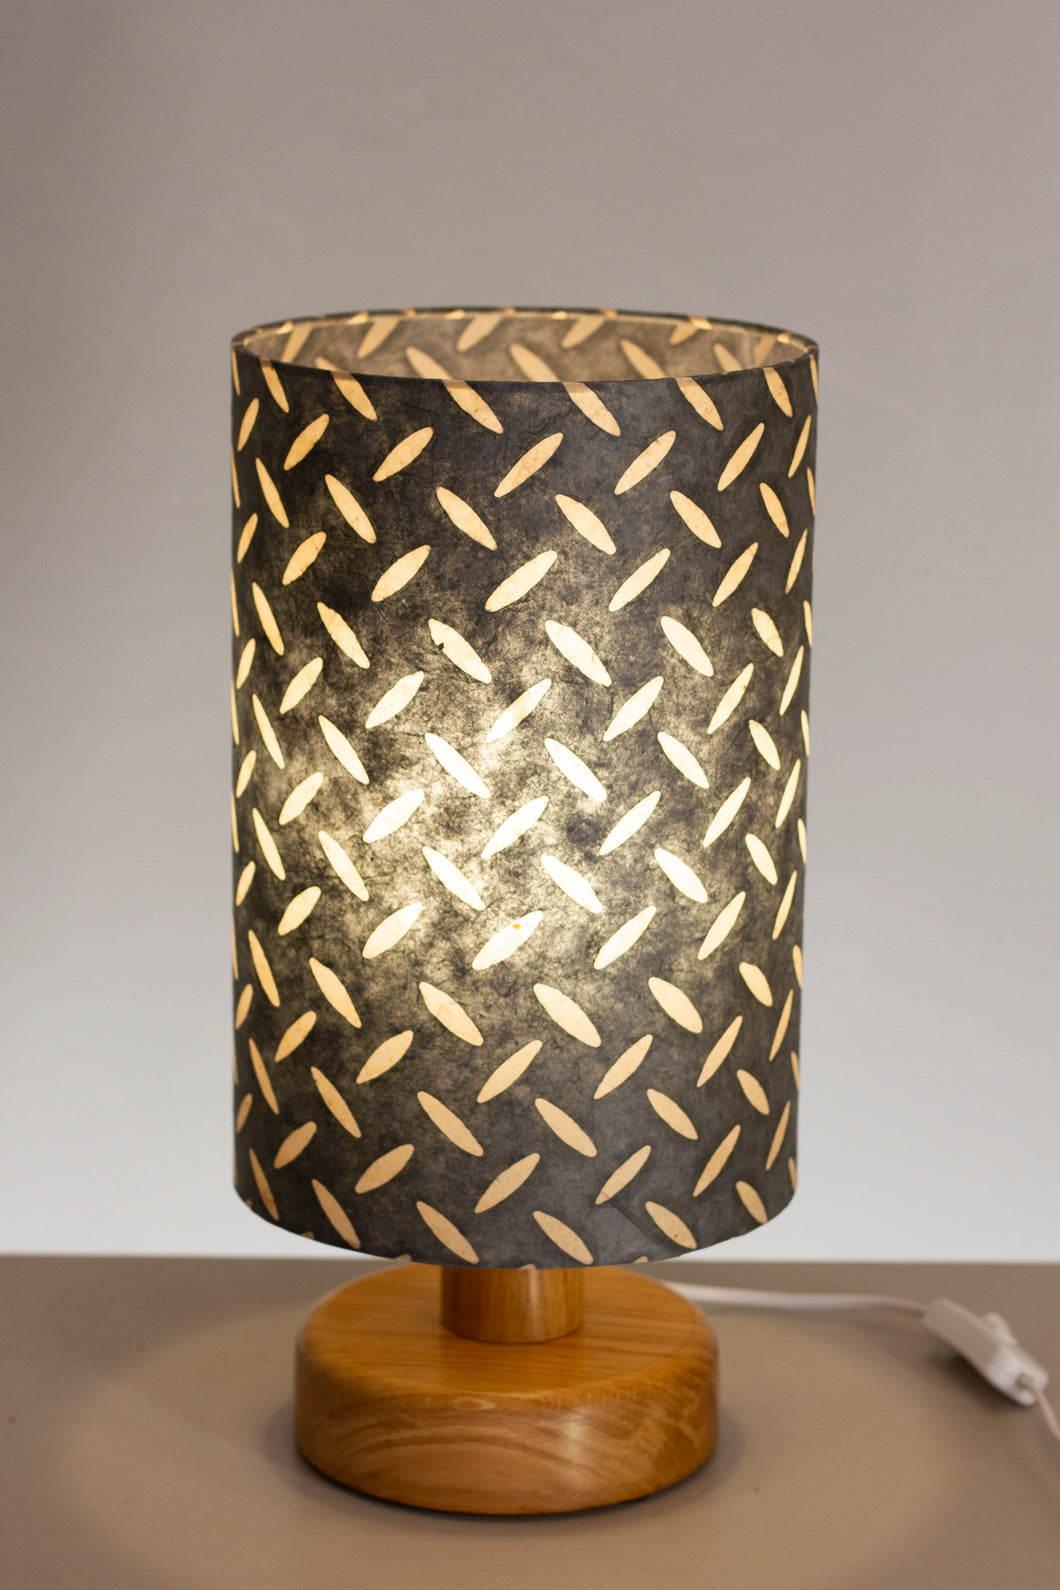 Round Wooden Table Lamp with 20cm x 30cm Lamp Shade in P88 ~ Batik Tread Plate Grey